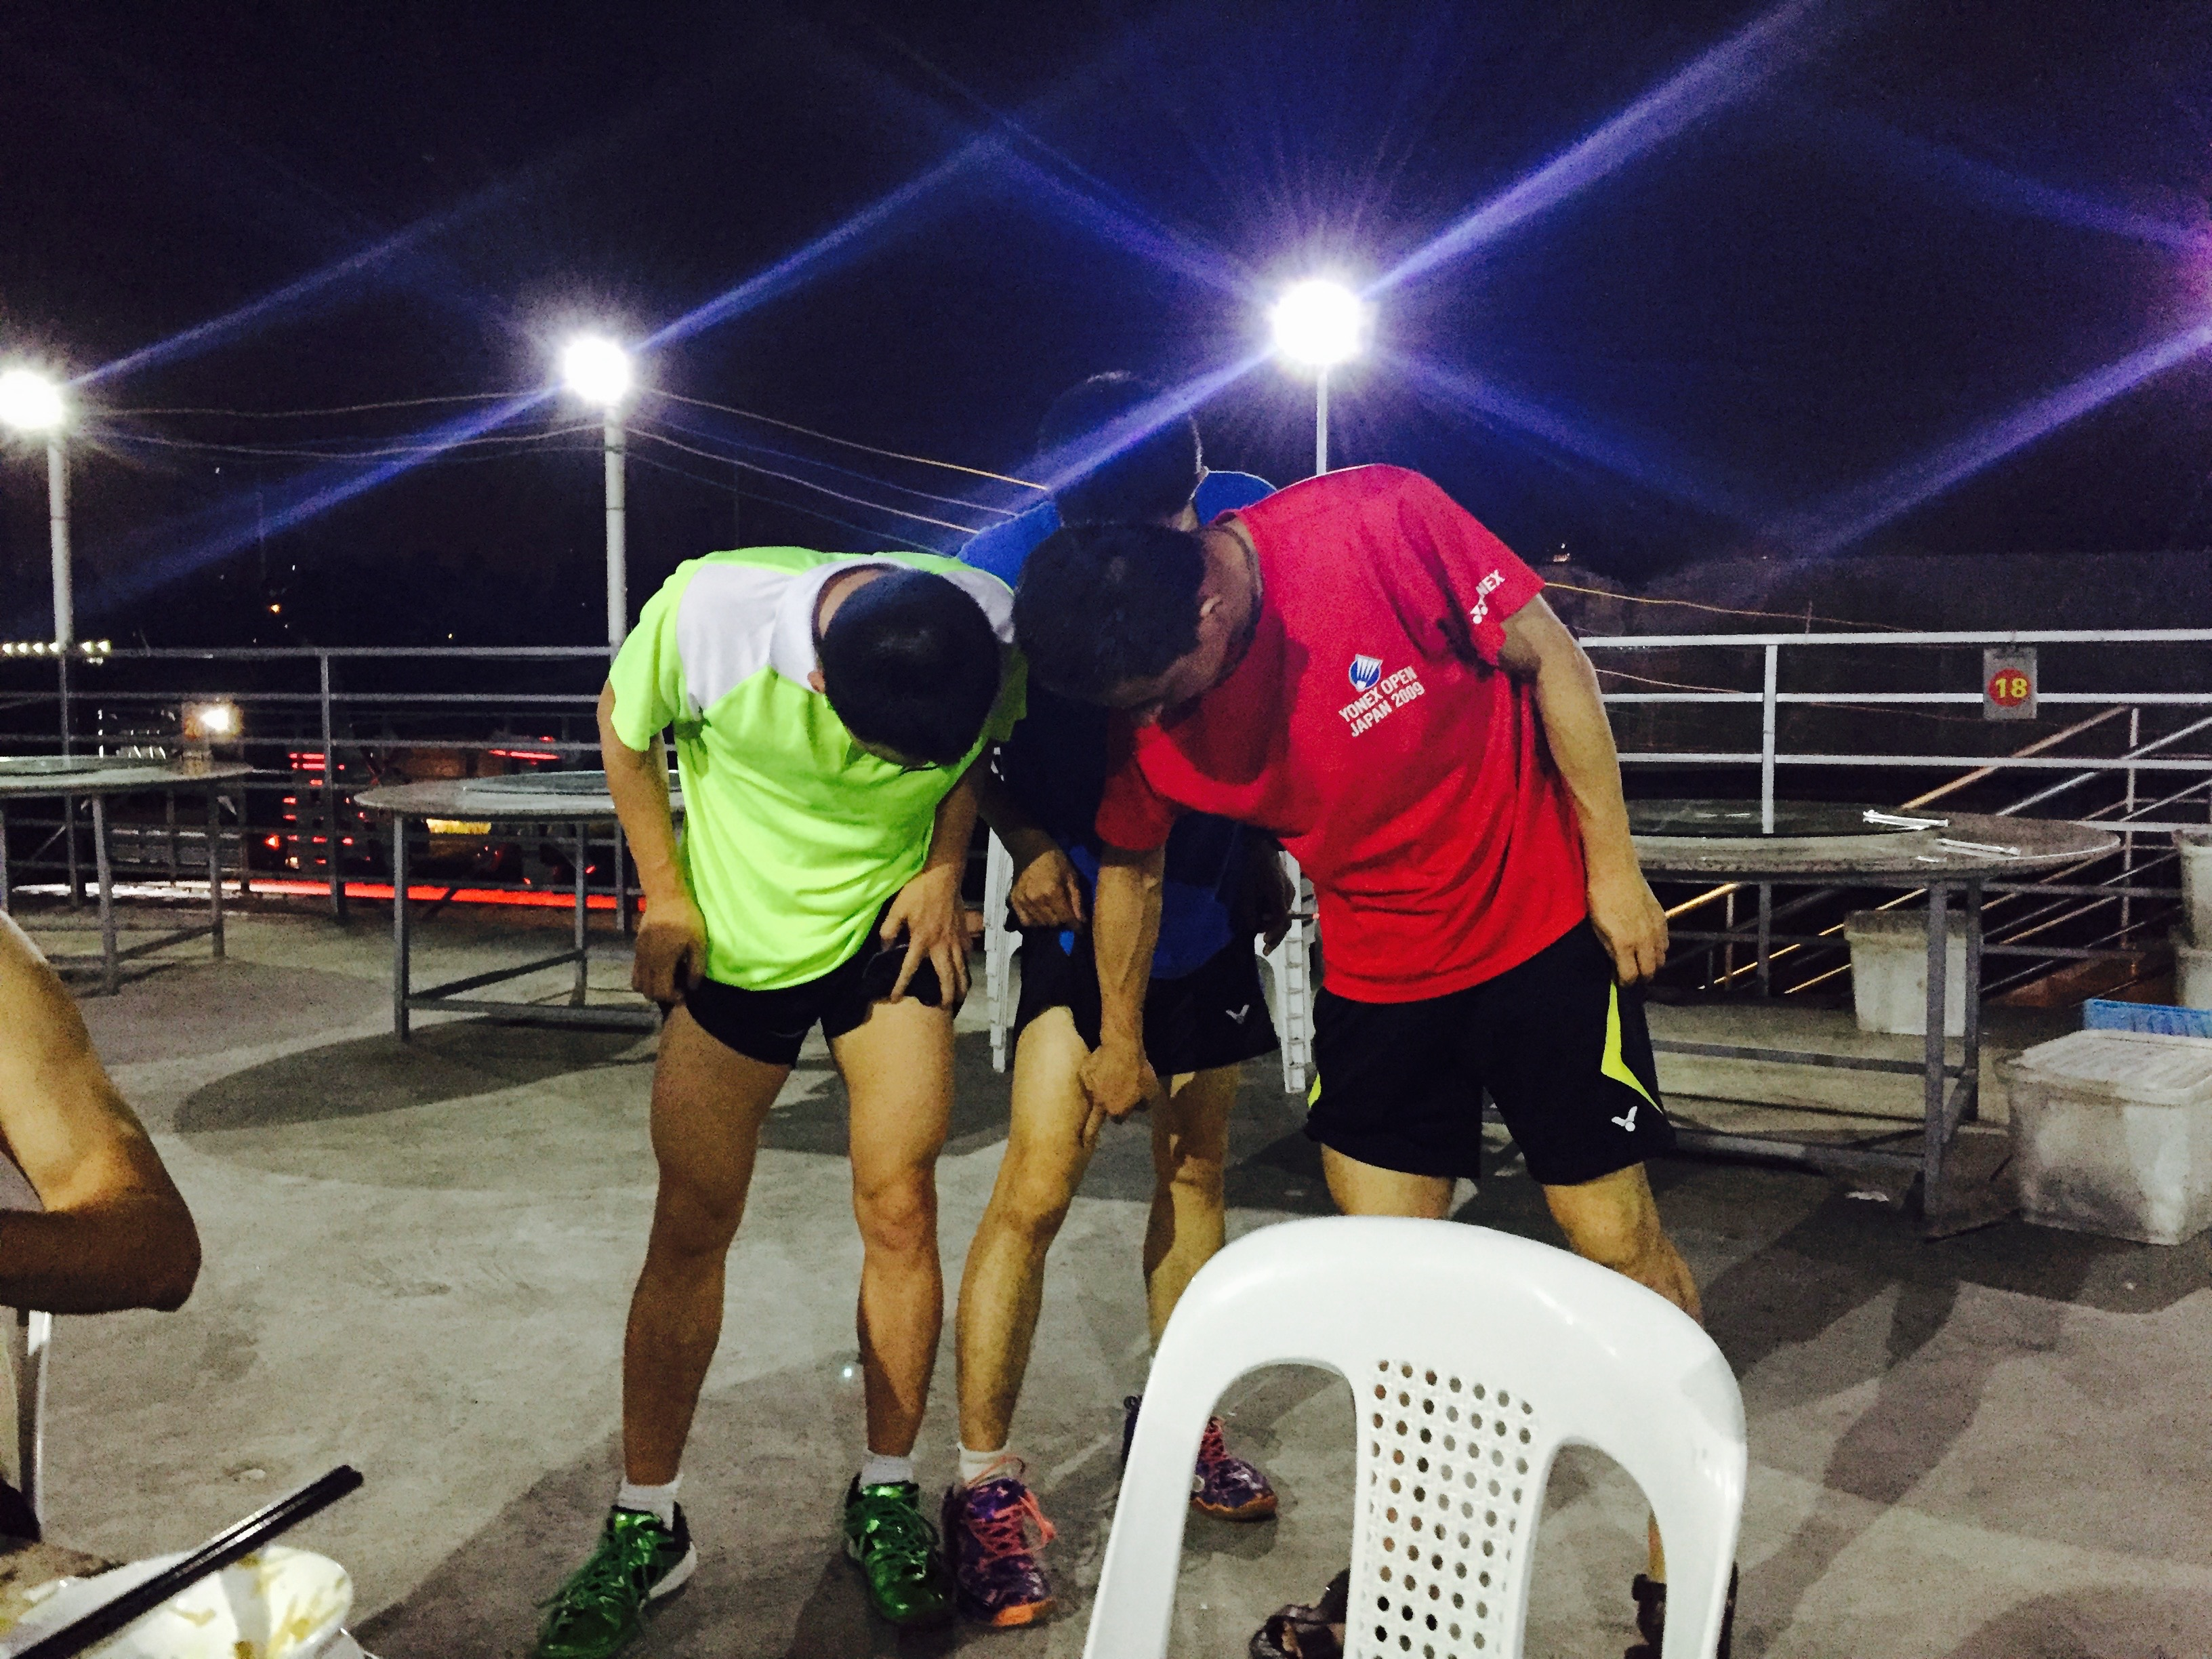 My coach (center), my coaches coach (in the red, and another guy comparing their leg muslces to see which one was bigger. In badminton, the thigh muscle is important and the bigger the better.